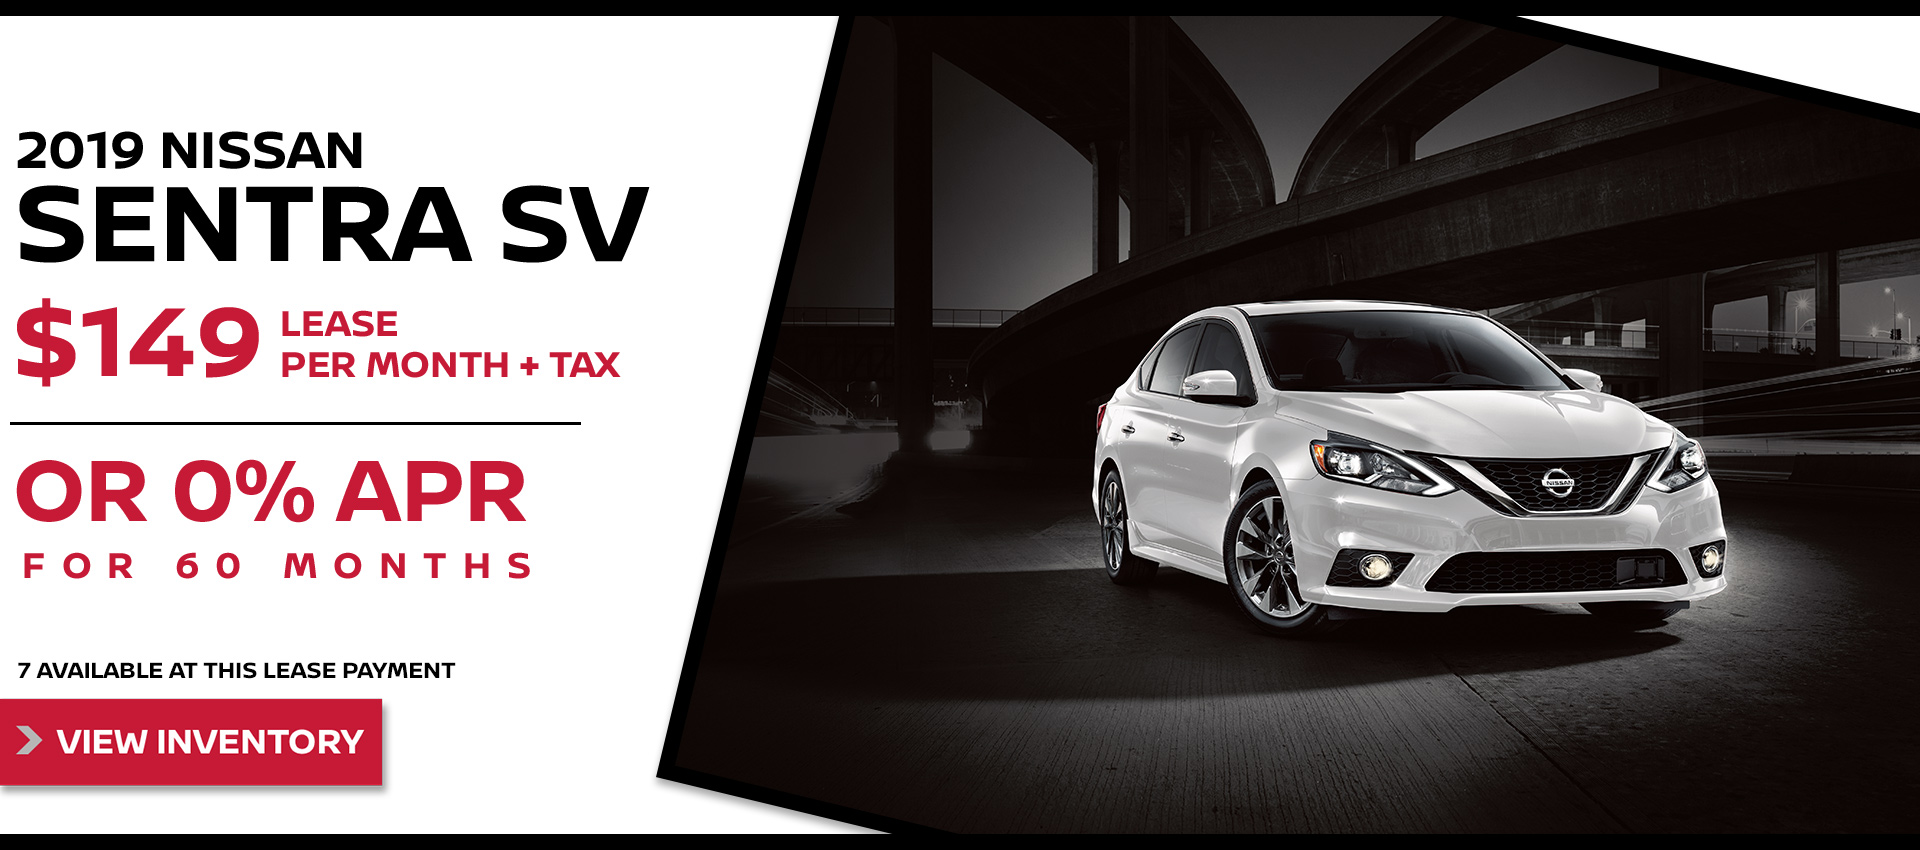 Mossy Nissan - Sentra $149 Lease HP